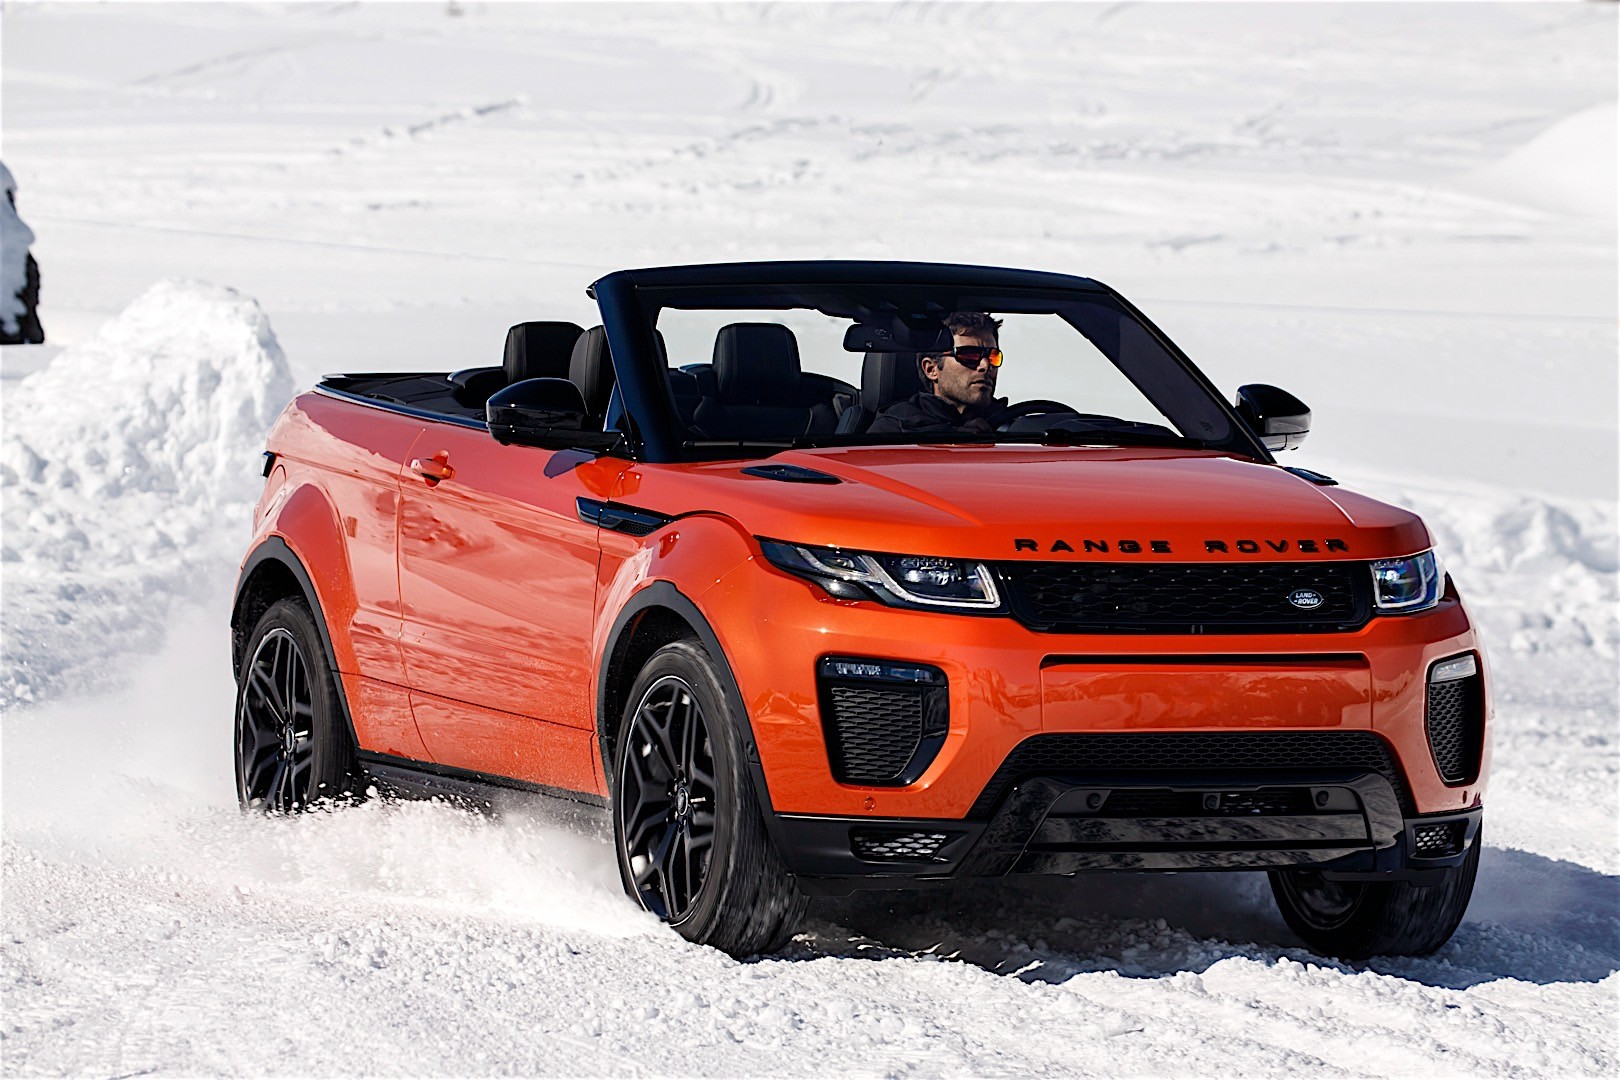 land rover range rover evoque convertible specs 2016 2017 2018 autoevolution. Black Bedroom Furniture Sets. Home Design Ideas